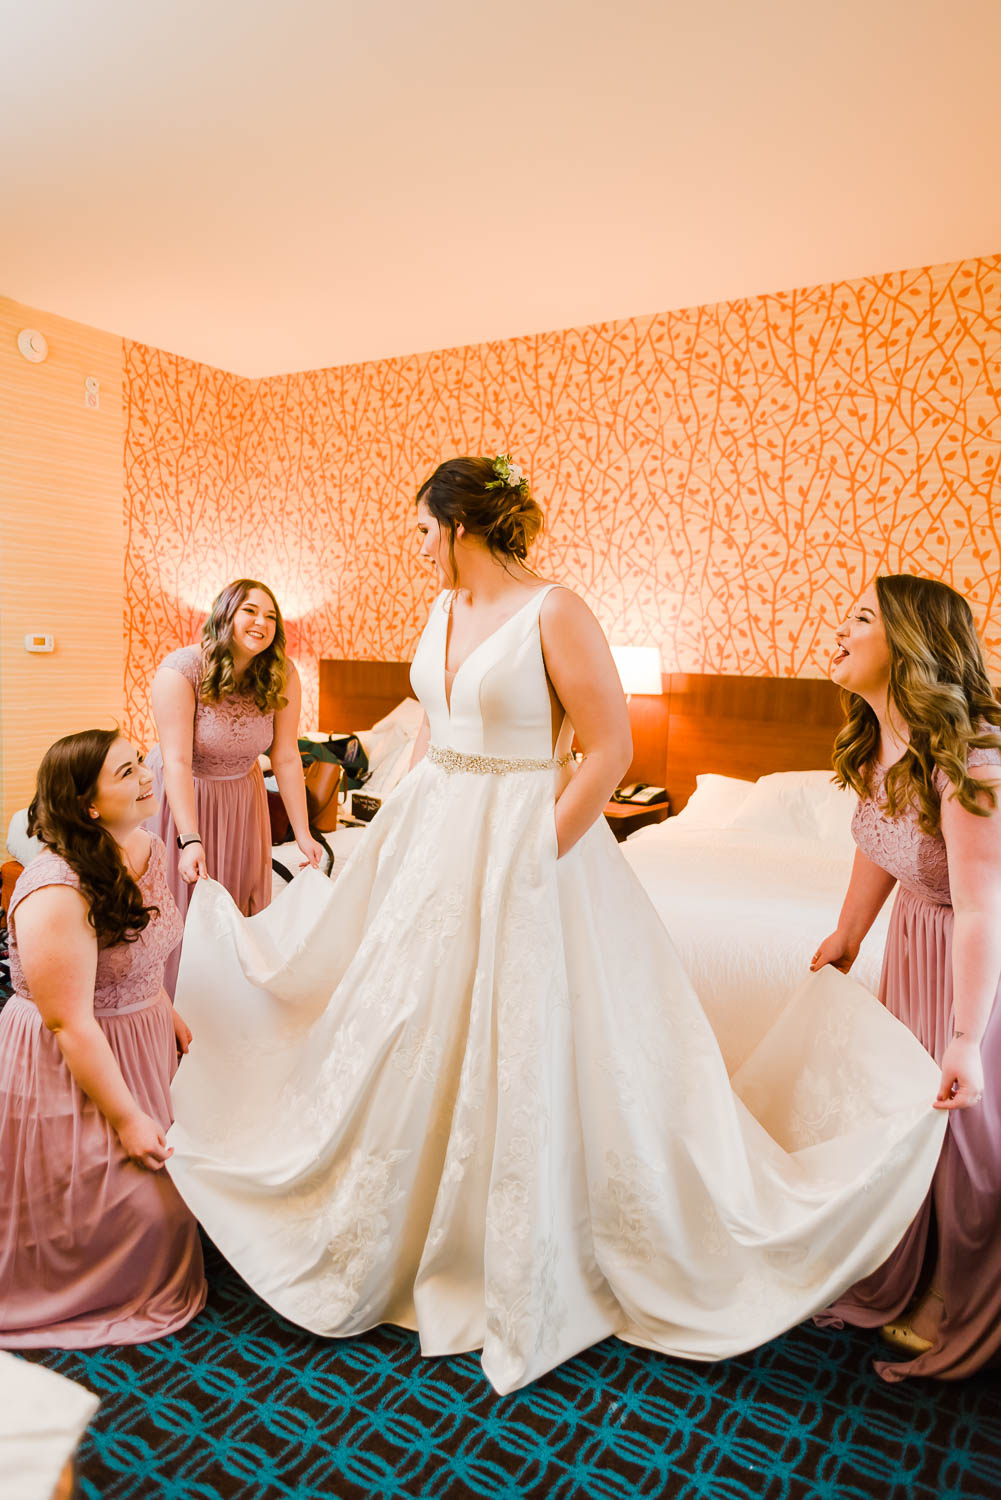 bridesmaids helping bride with her dress.